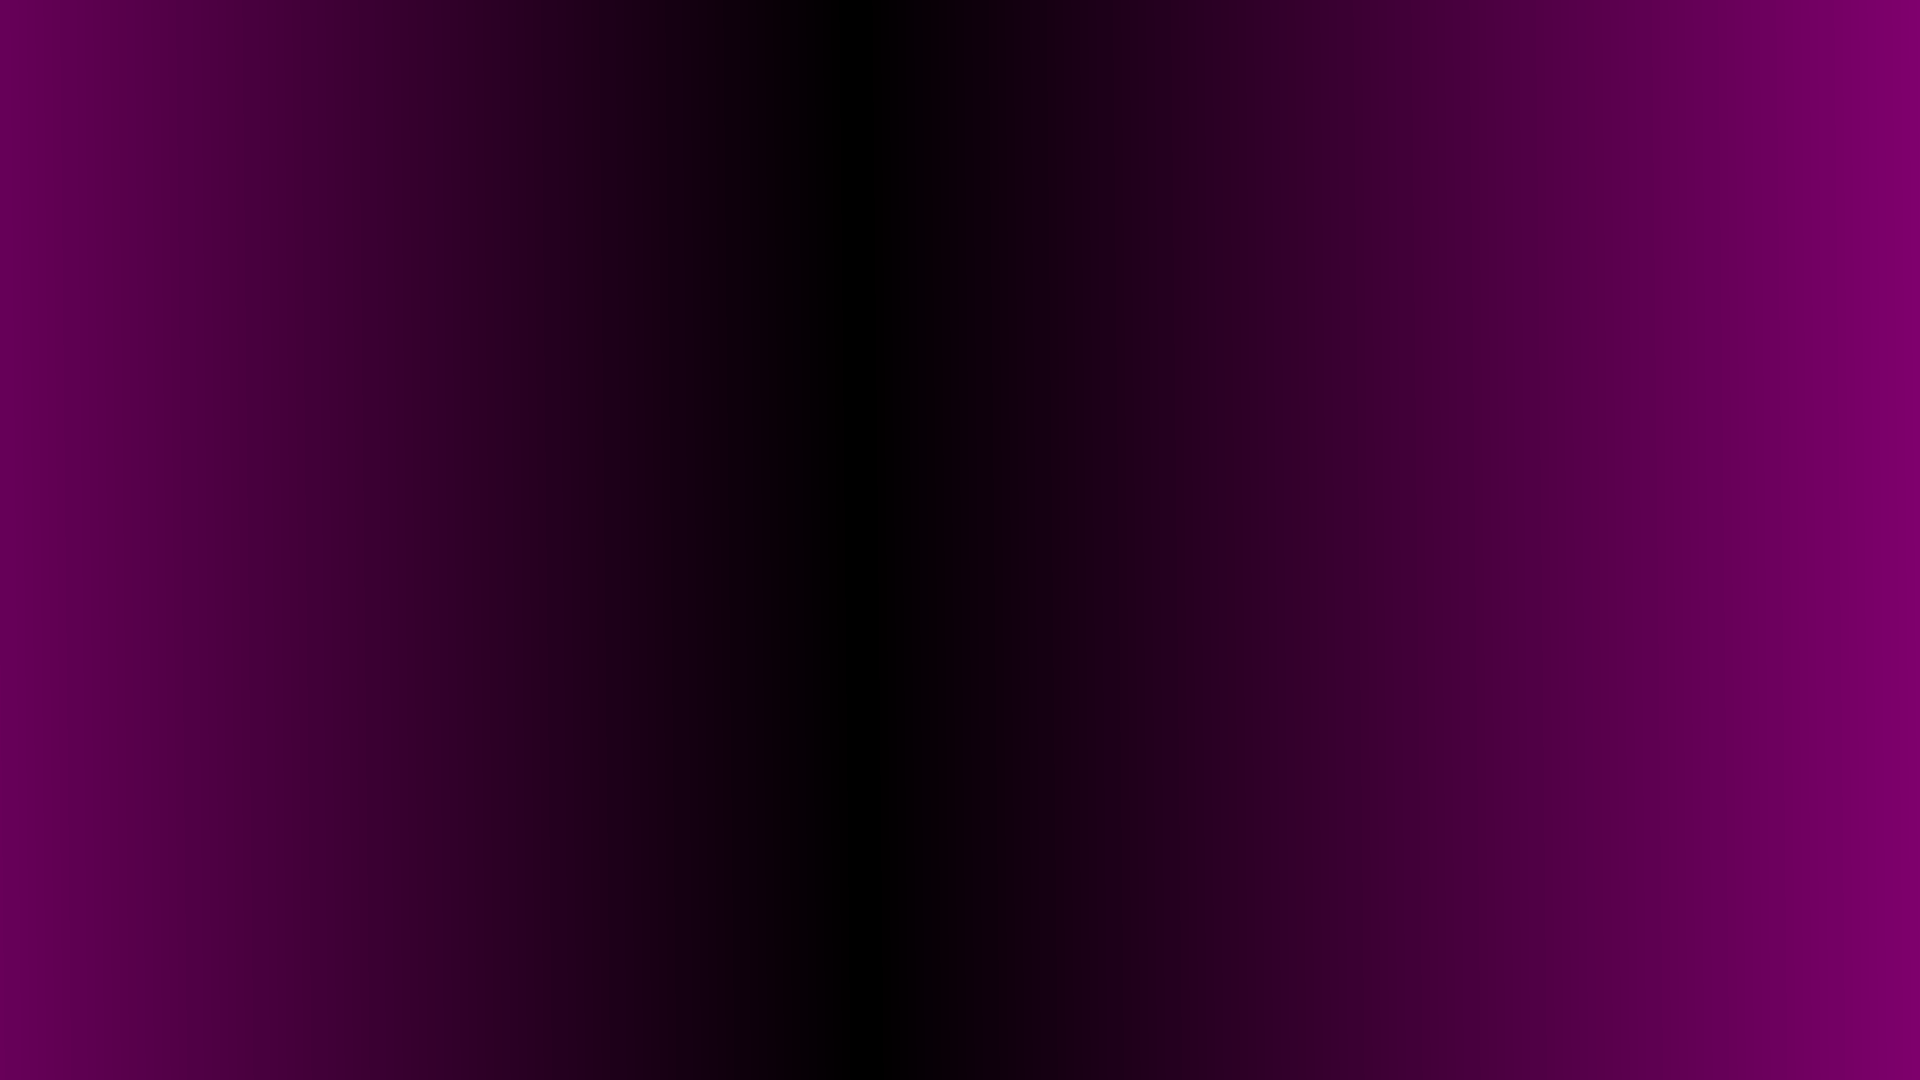 Nothing found for Black and pink gradient desktop wallpaper 1920x1080